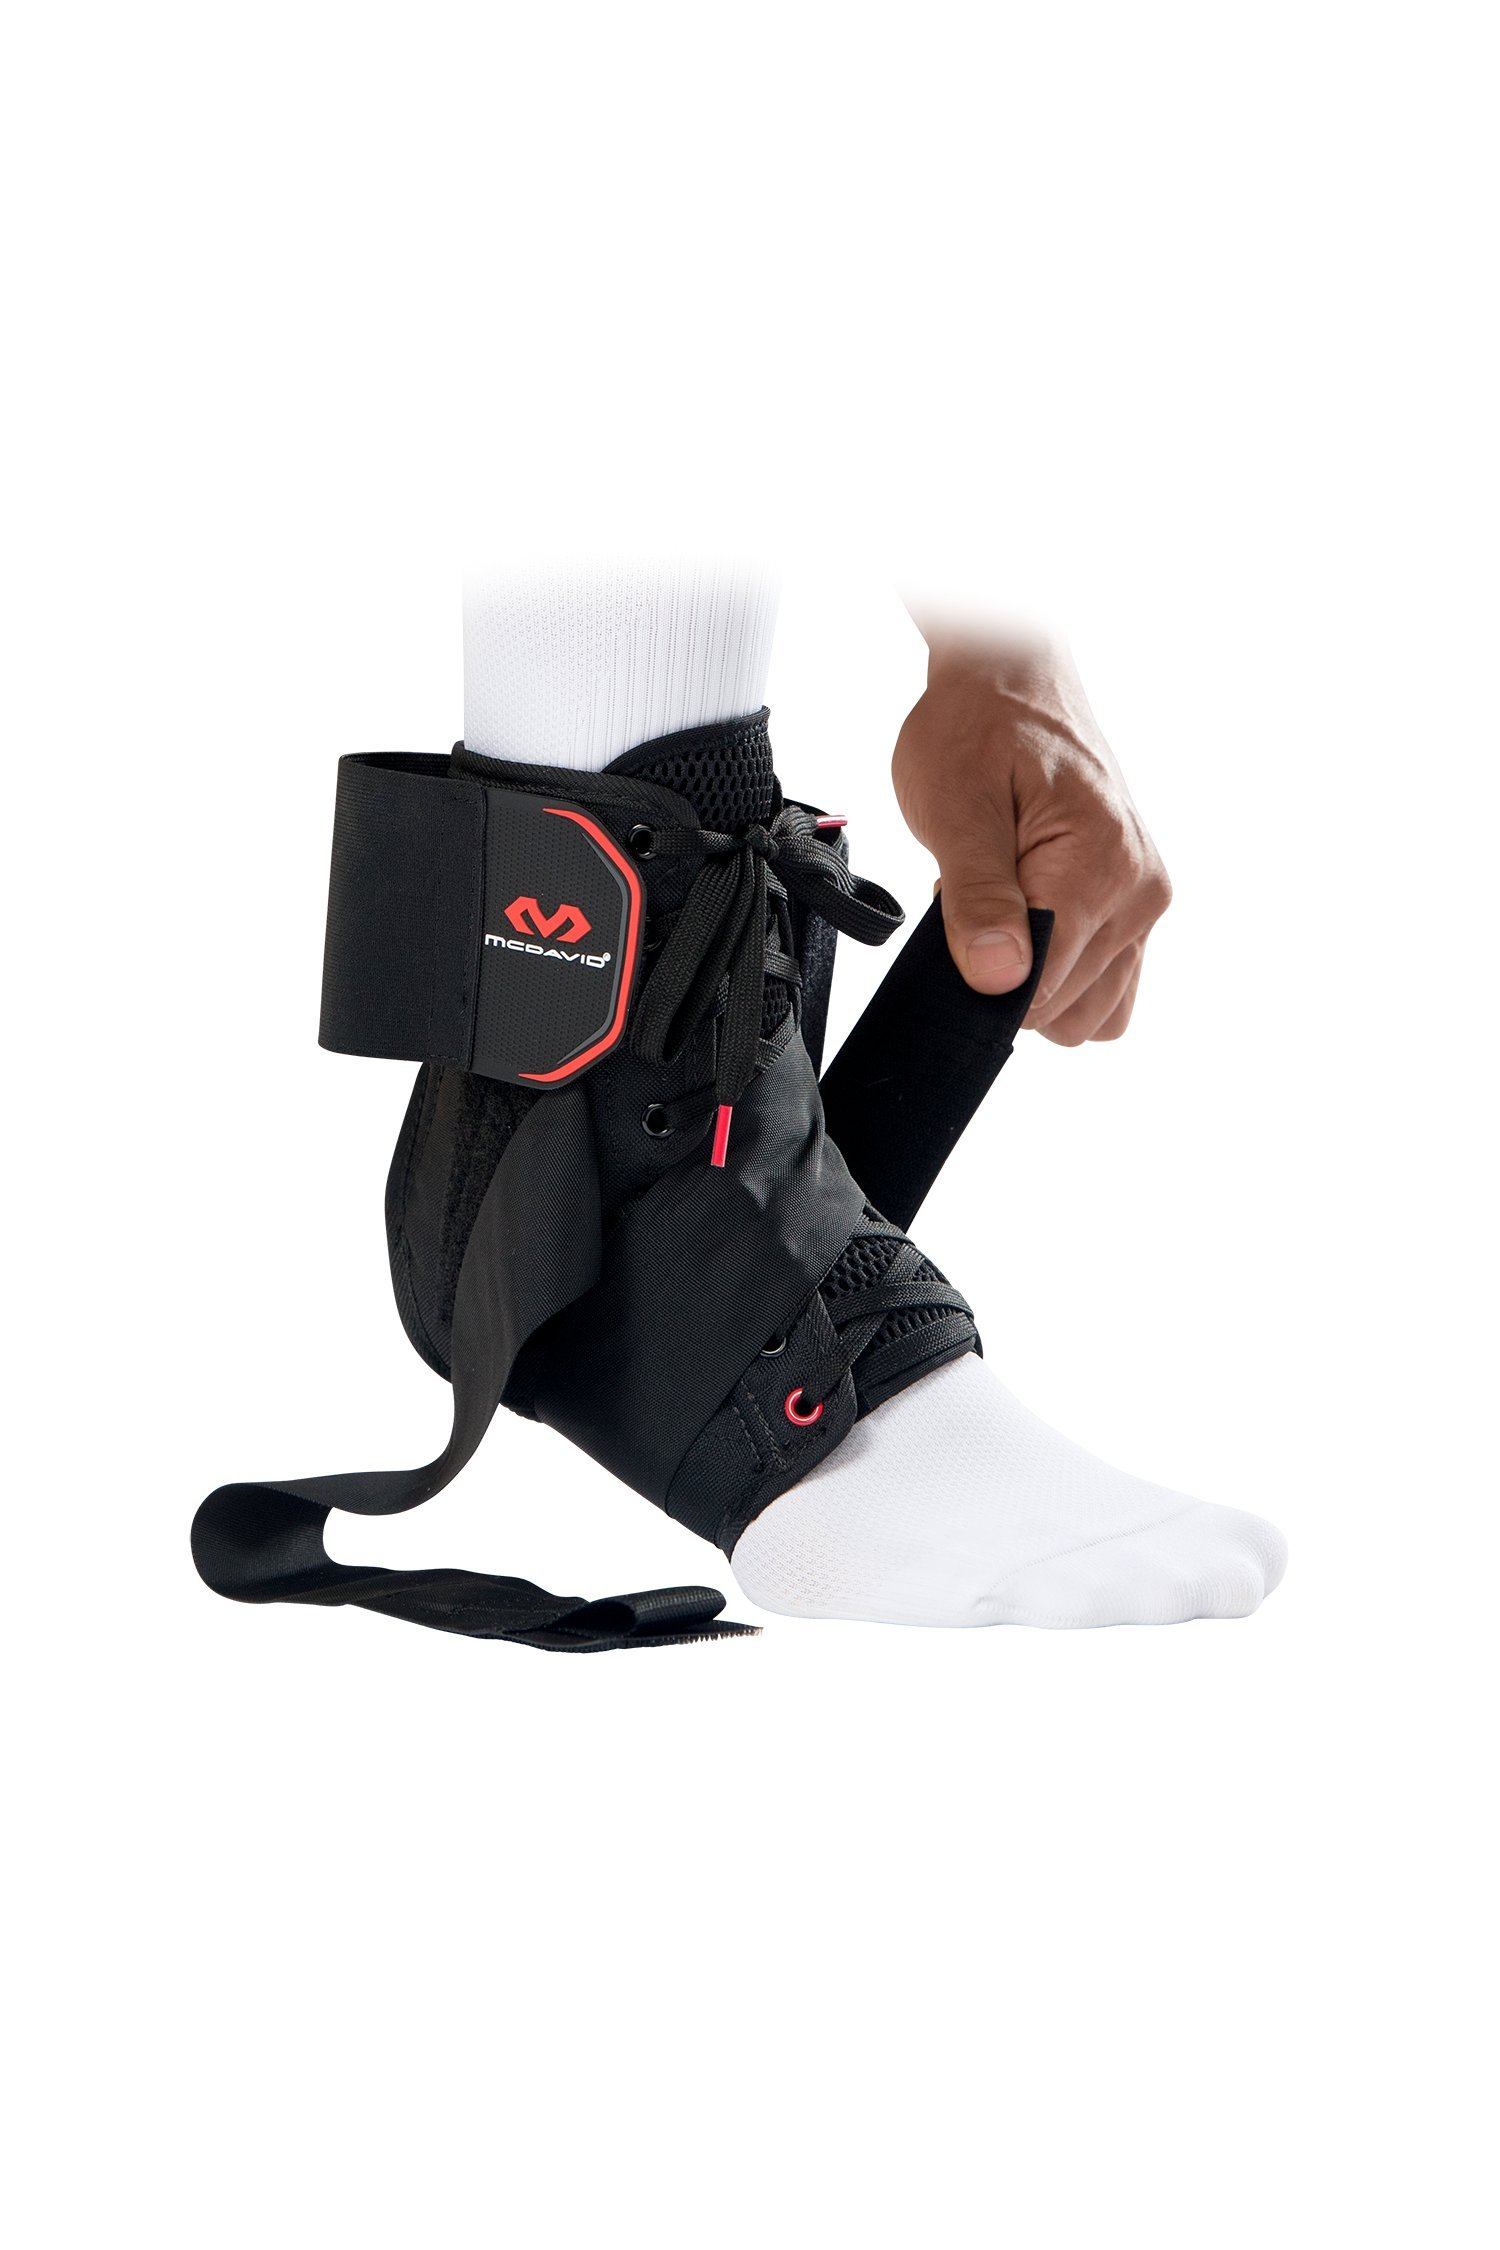 McDavid Level 3 Ankle Brace with Straps, Gray, X-Small by McDavid (Image #3)